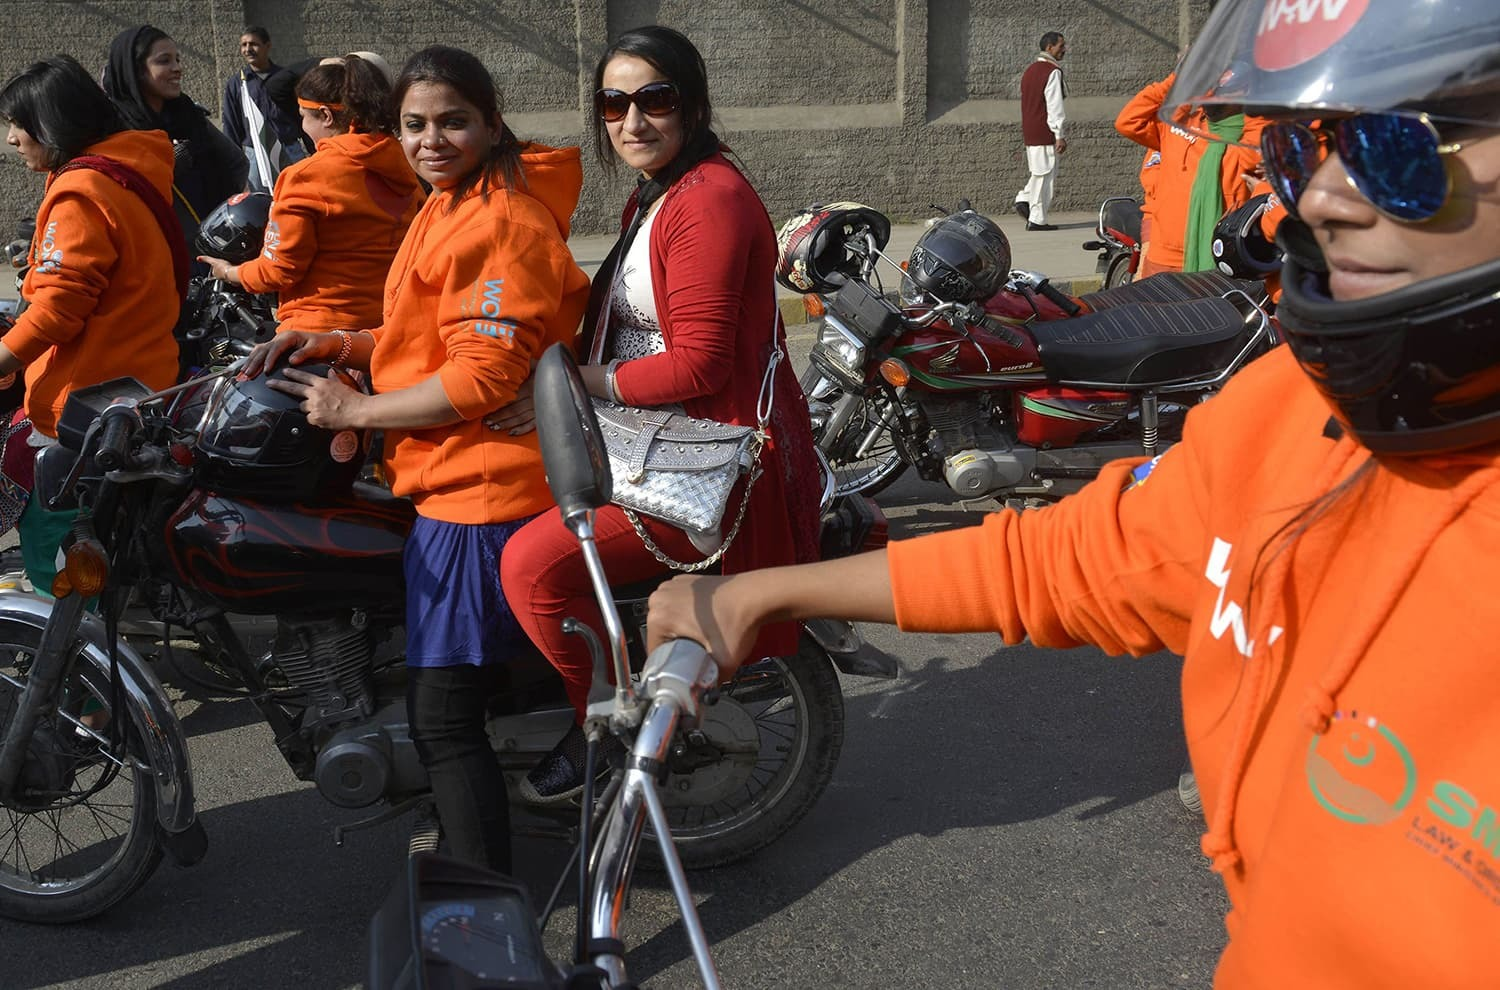 Women participants of Women on Wheels (WOW) wait on their motor-bikes prior to the start of a rally launching the Women on Wheels campaign in Lahore on January 10, 2016. ─ AFP